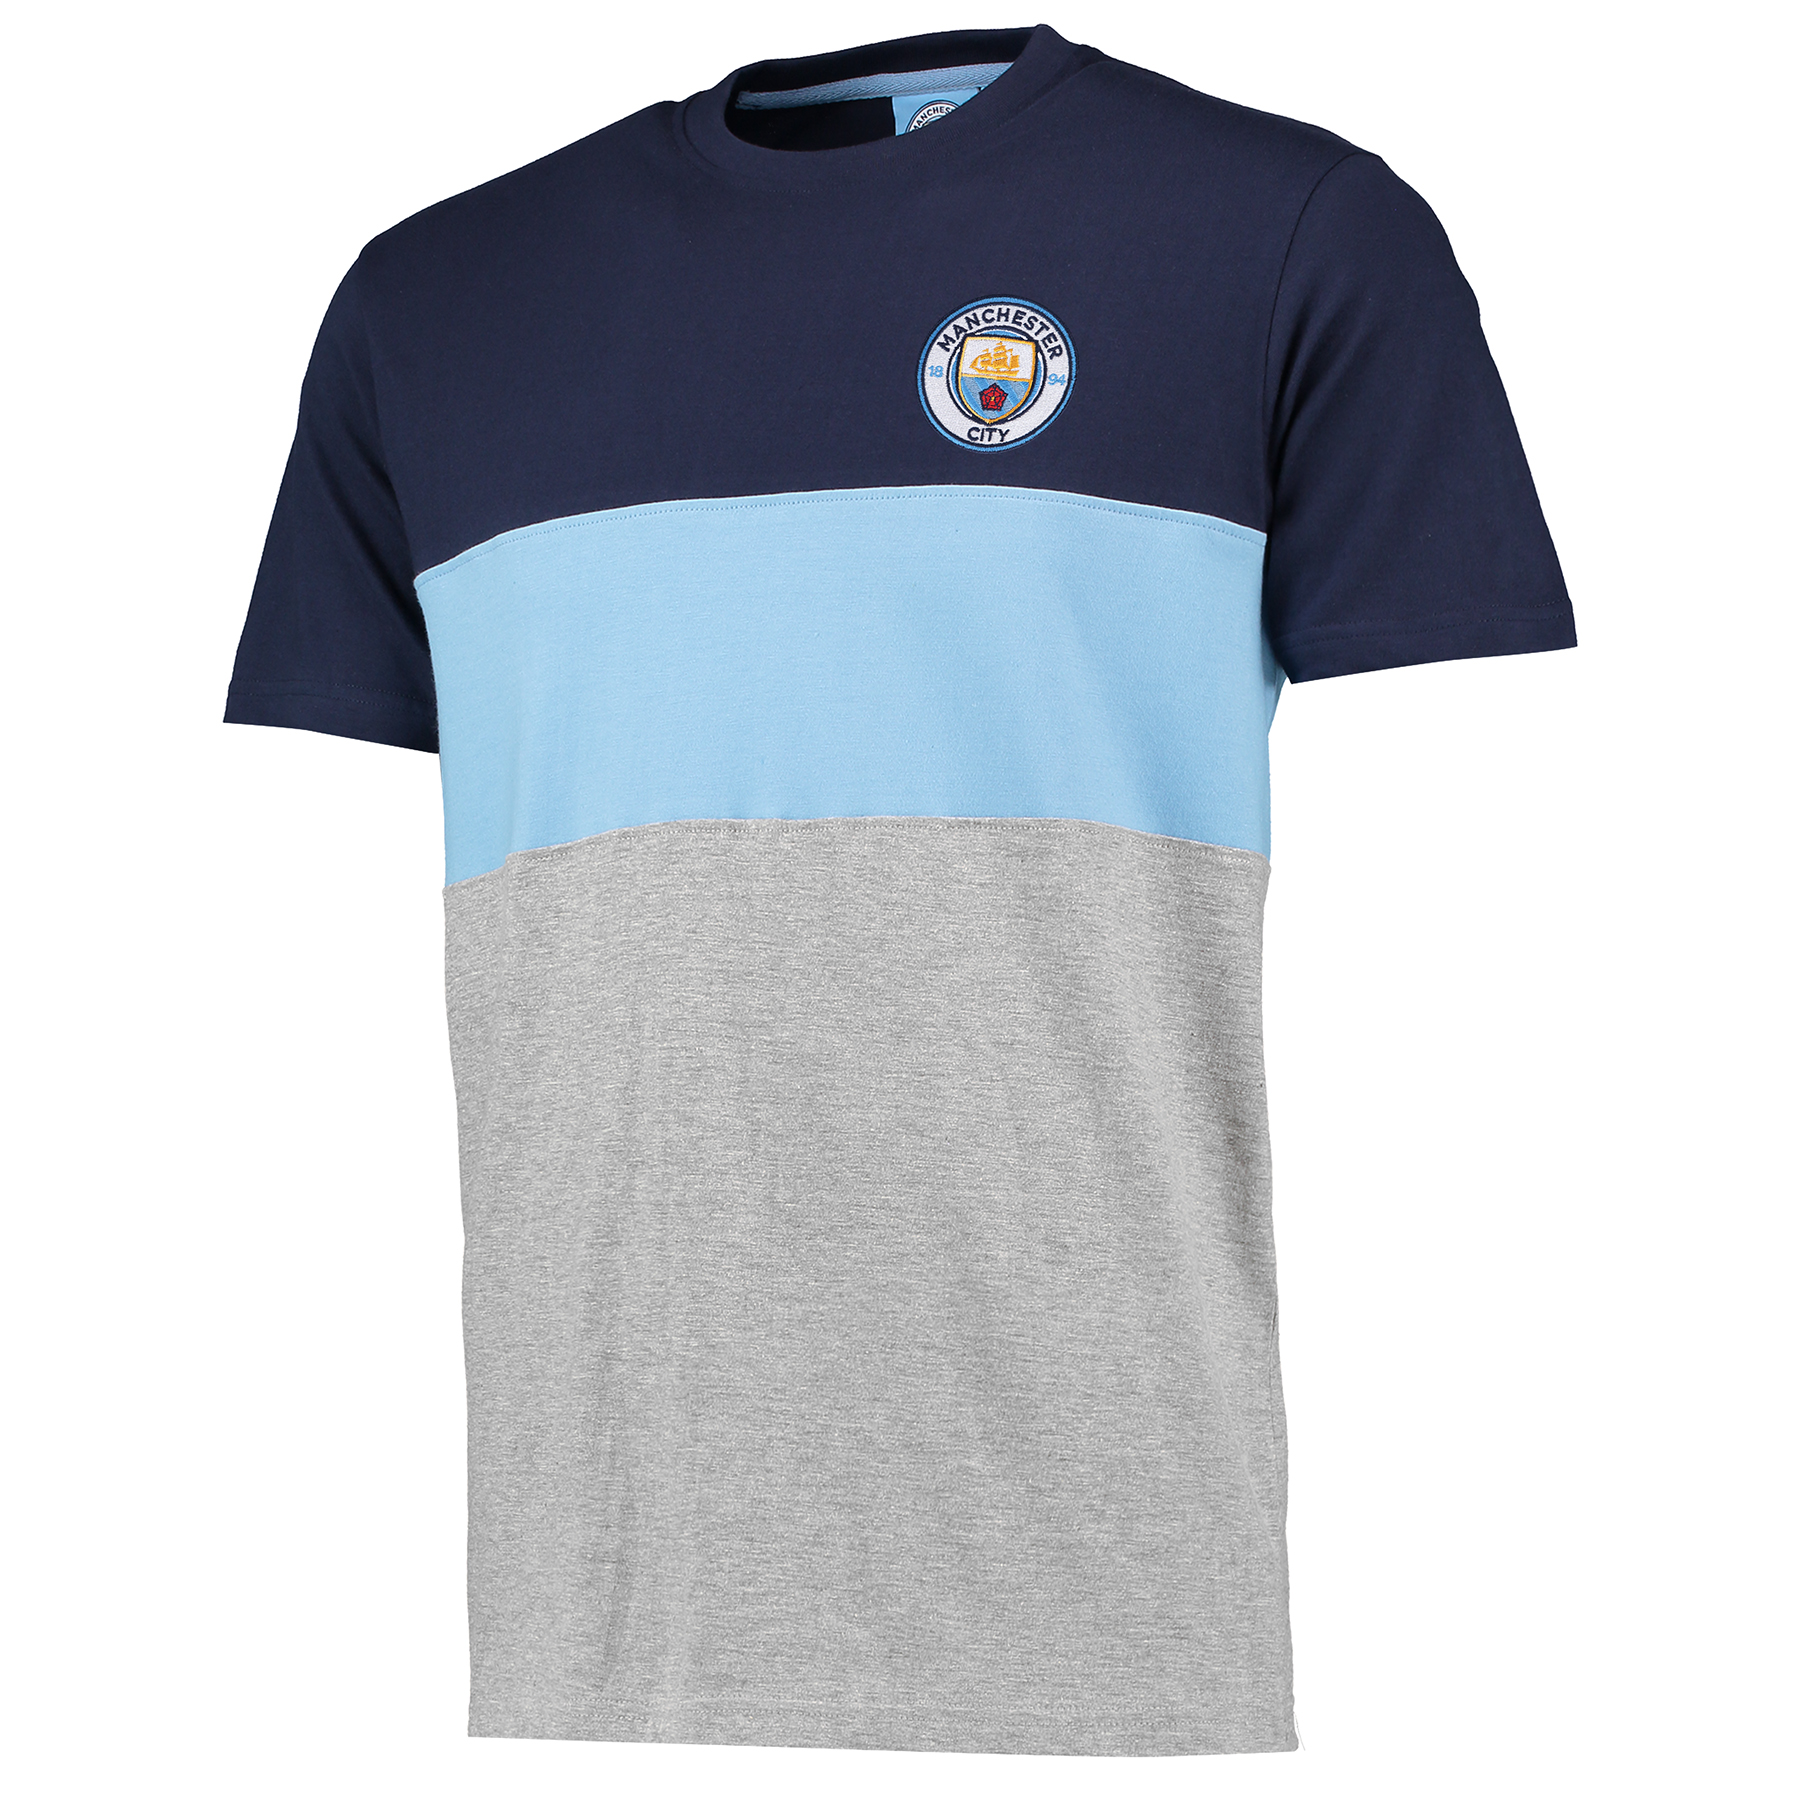 Manchester City Classic Block T-Shirt - Grey/Navy/Sky